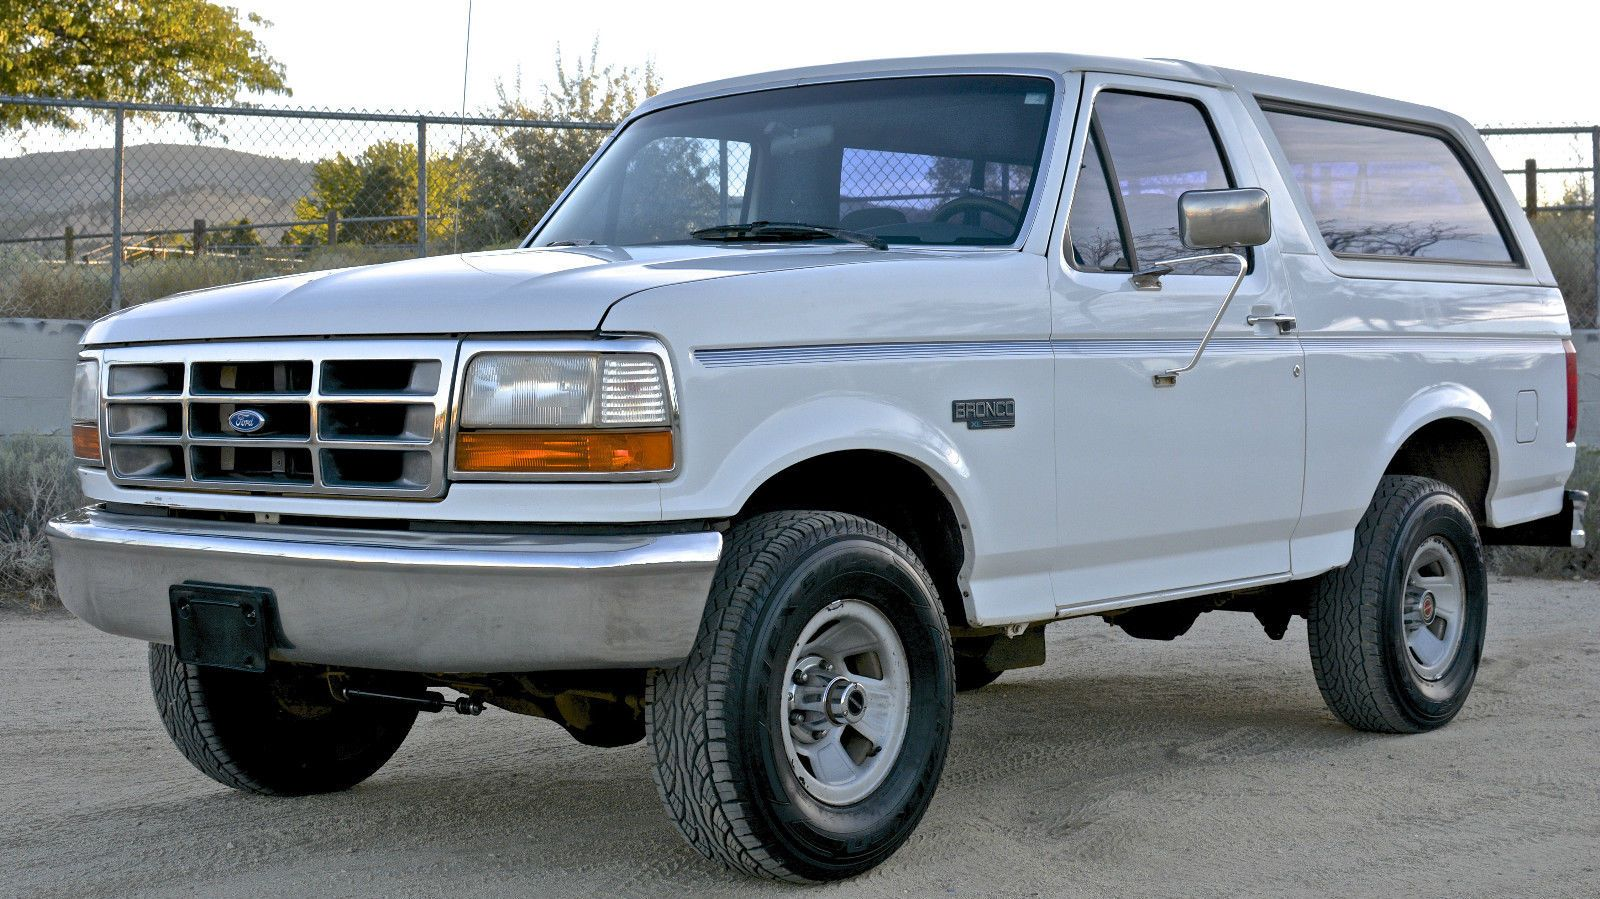 1994 Ford Bronco Xl Sport Utility 2 Door Ford Bronco Bronco Ford